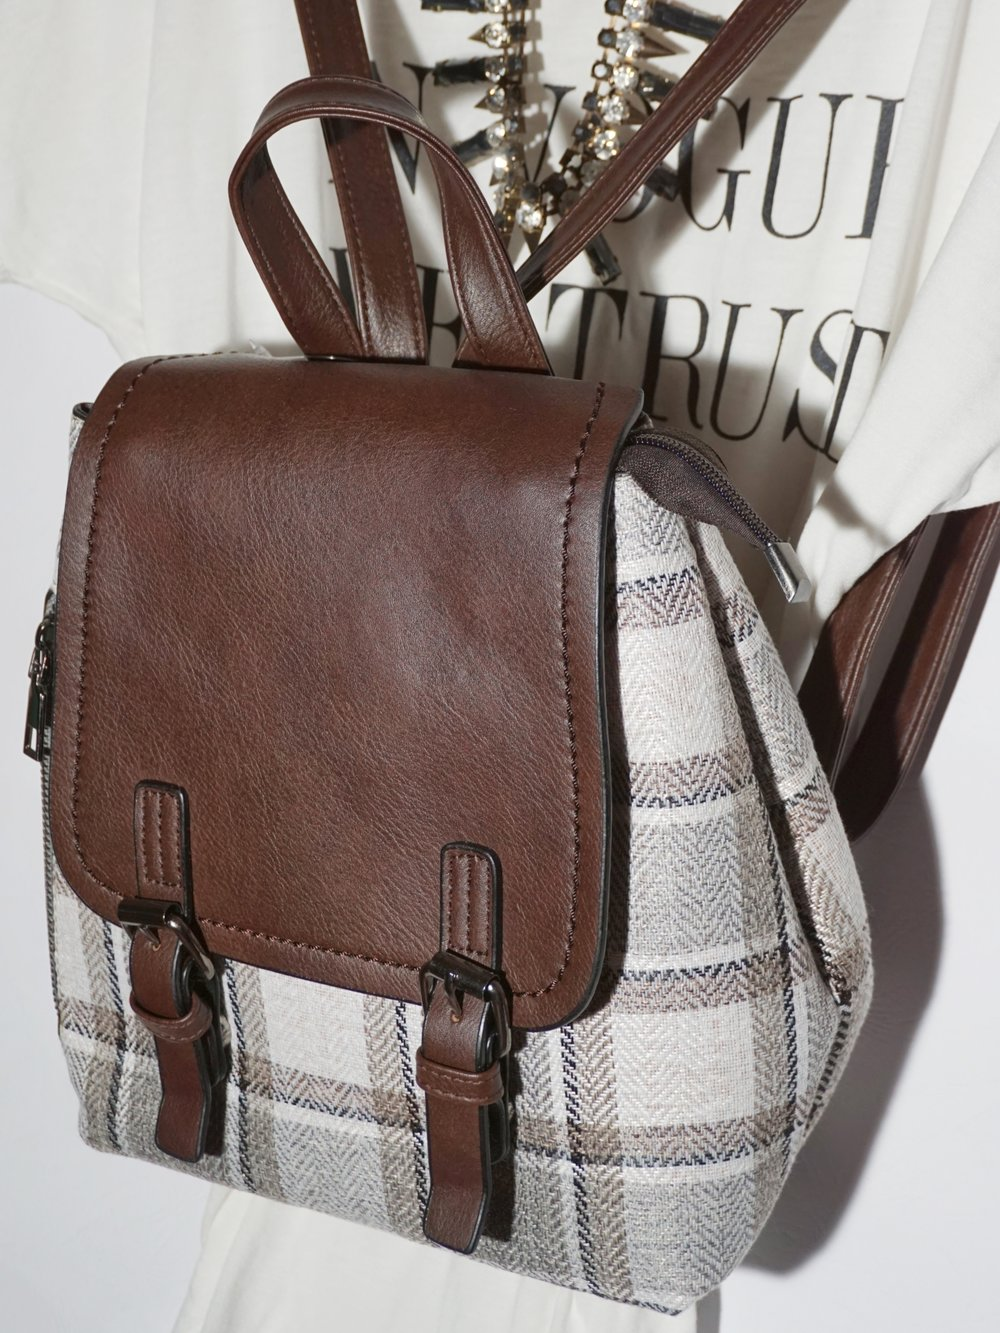 found my match!this bag has a mini zipper on one side for me to put in my extra hair tie, loose change, and mints. -